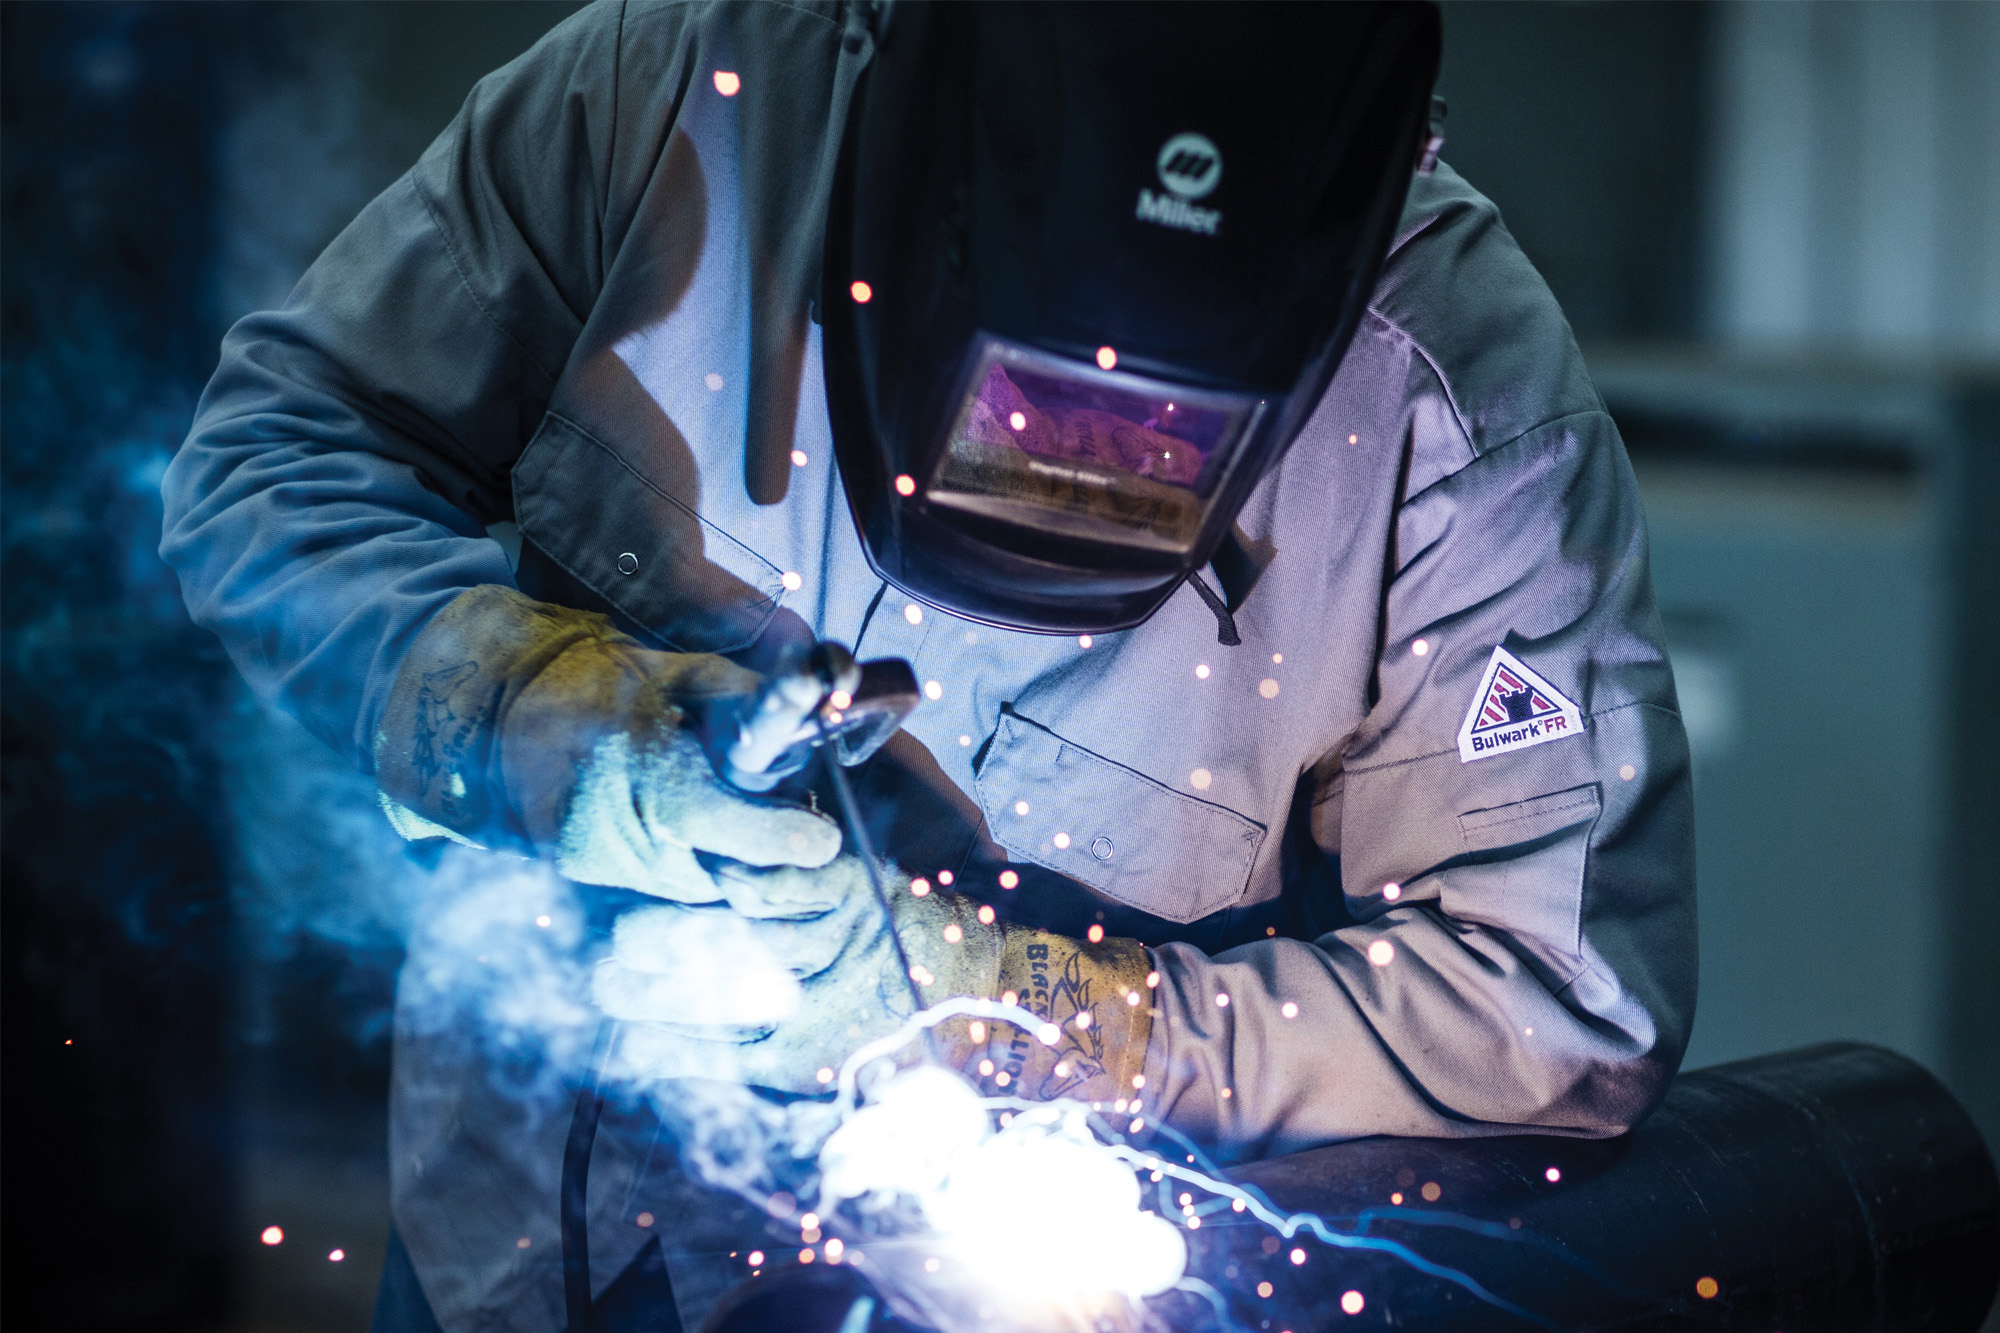 This is a photo of a man welding